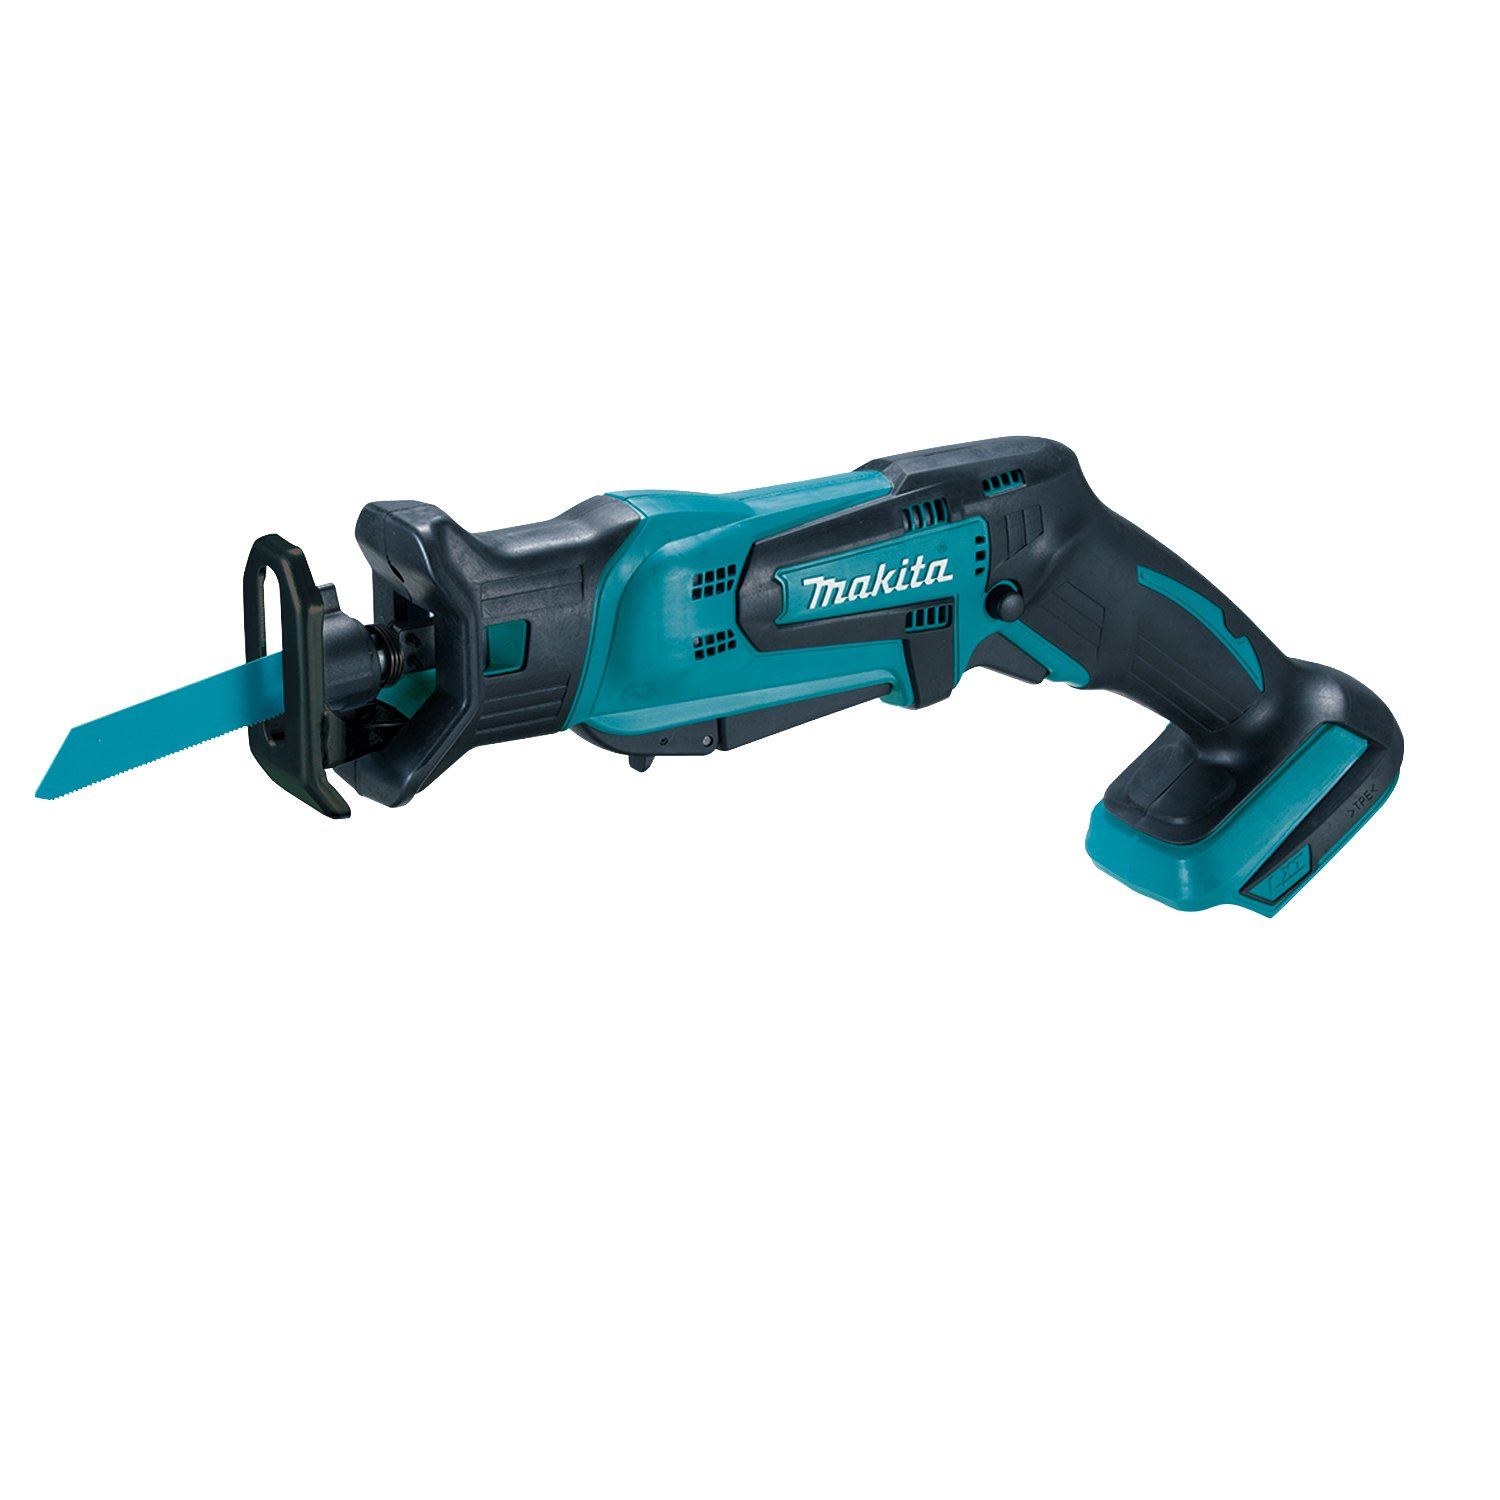 Makita XRJ01Z 18-Volt LXT Lithium-Ion Cordless Compact Reciprocating Saw (Tool Only, No Battery) by Makita